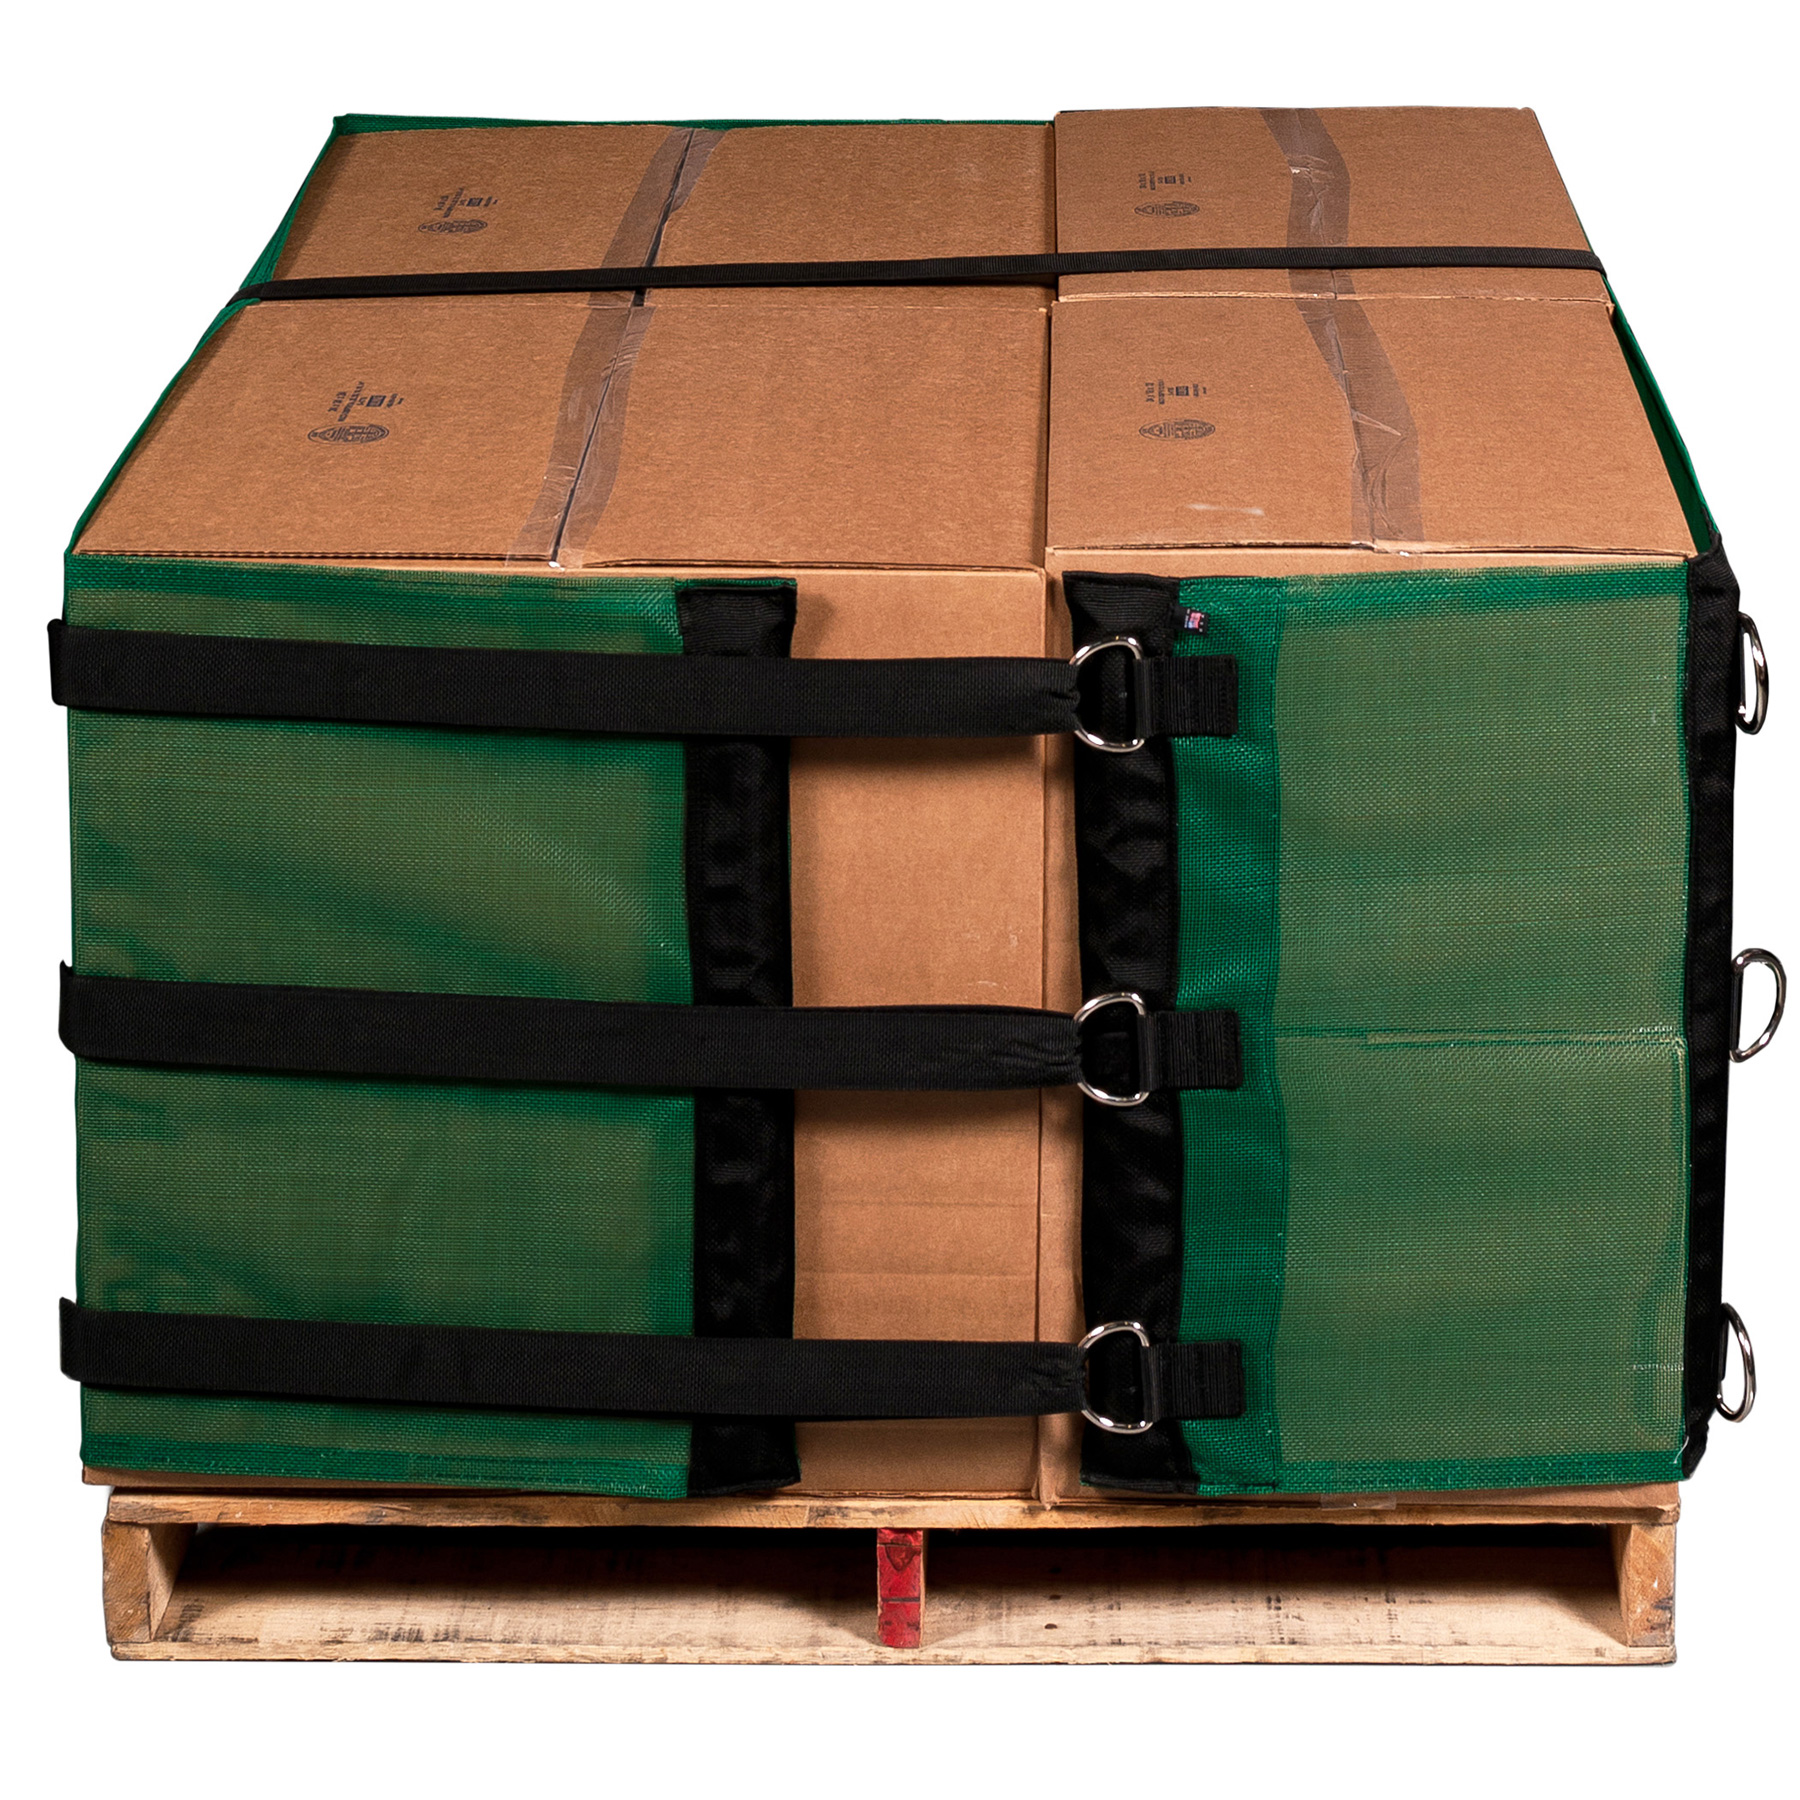 Pallet Wraps & Pallet Covers